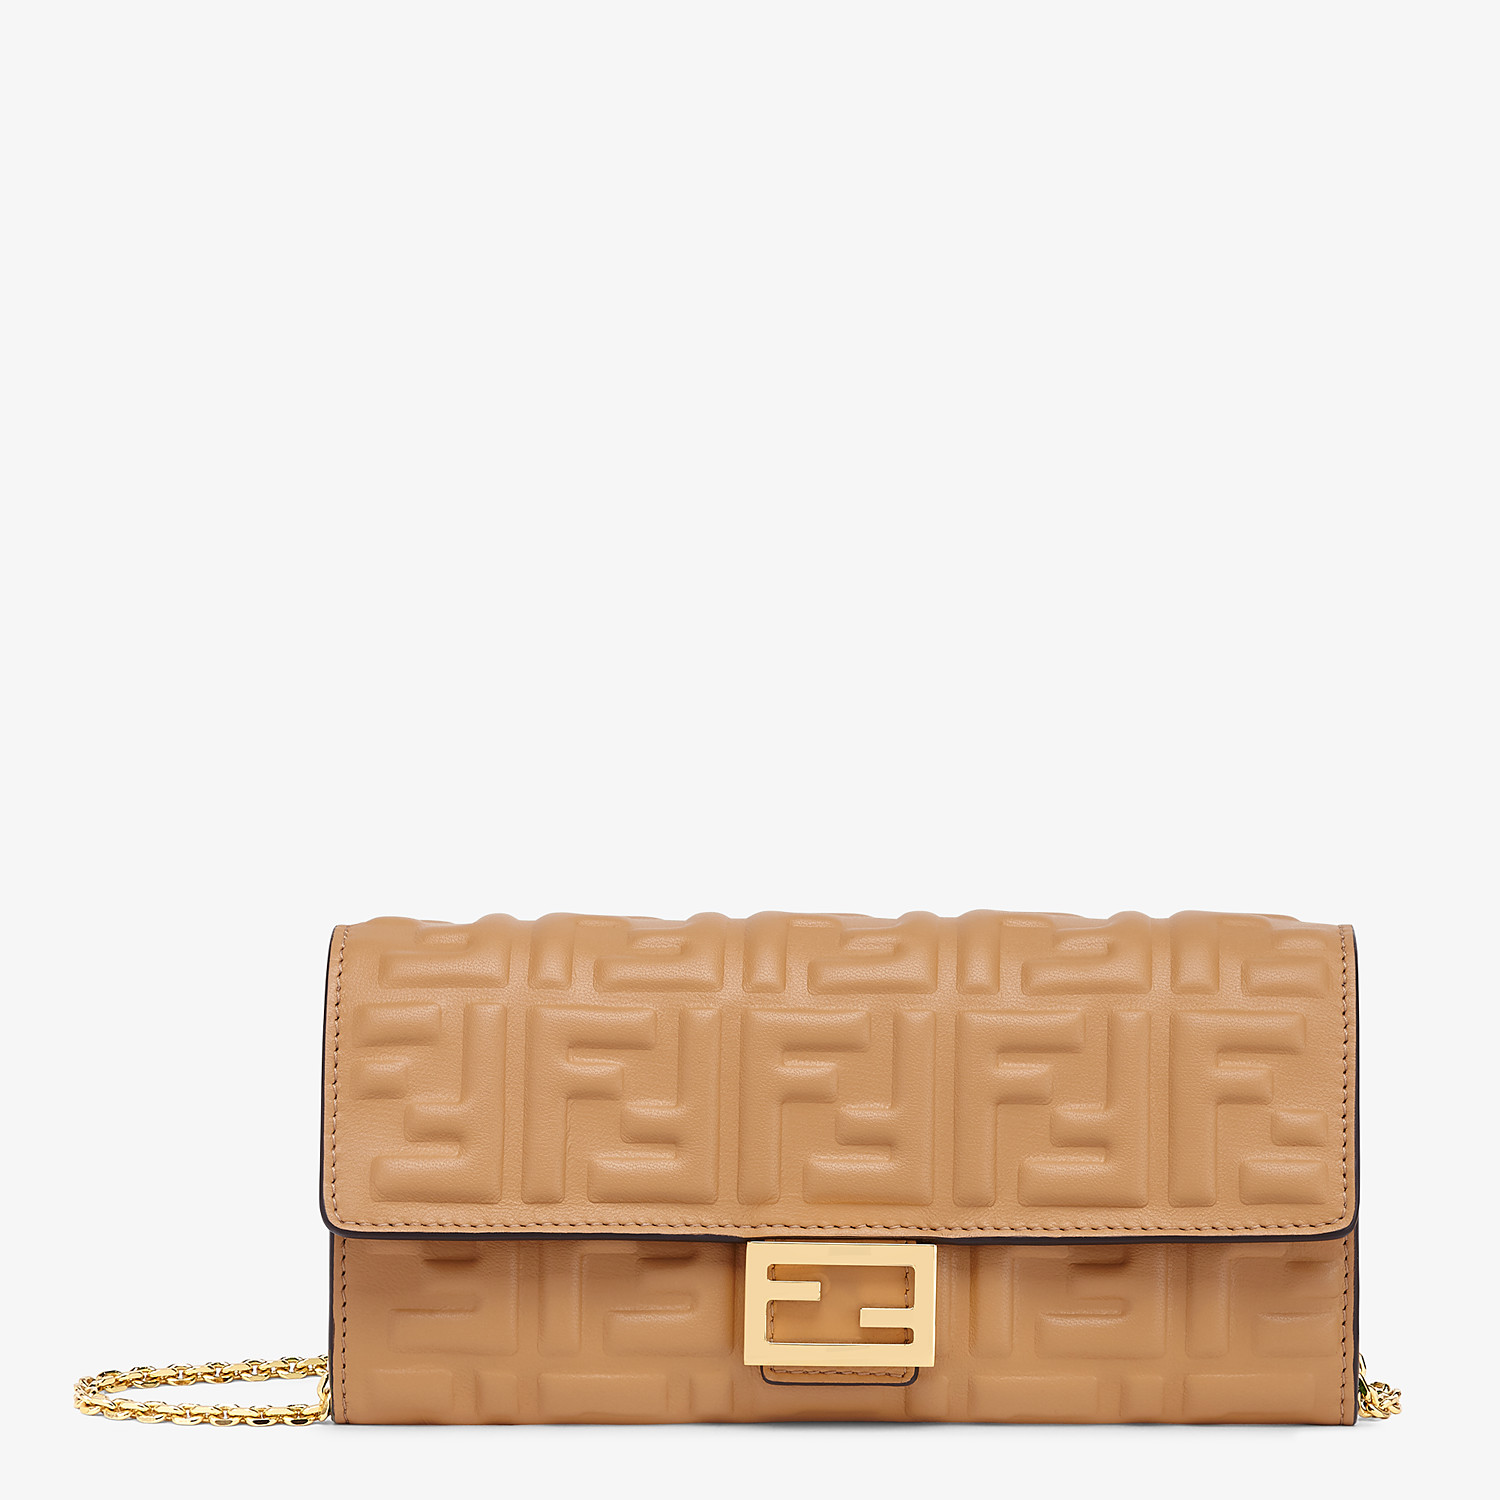 FENDI CONTINENTAL WITH CHAIN - Beige nappa leather wallet - view 1 detail